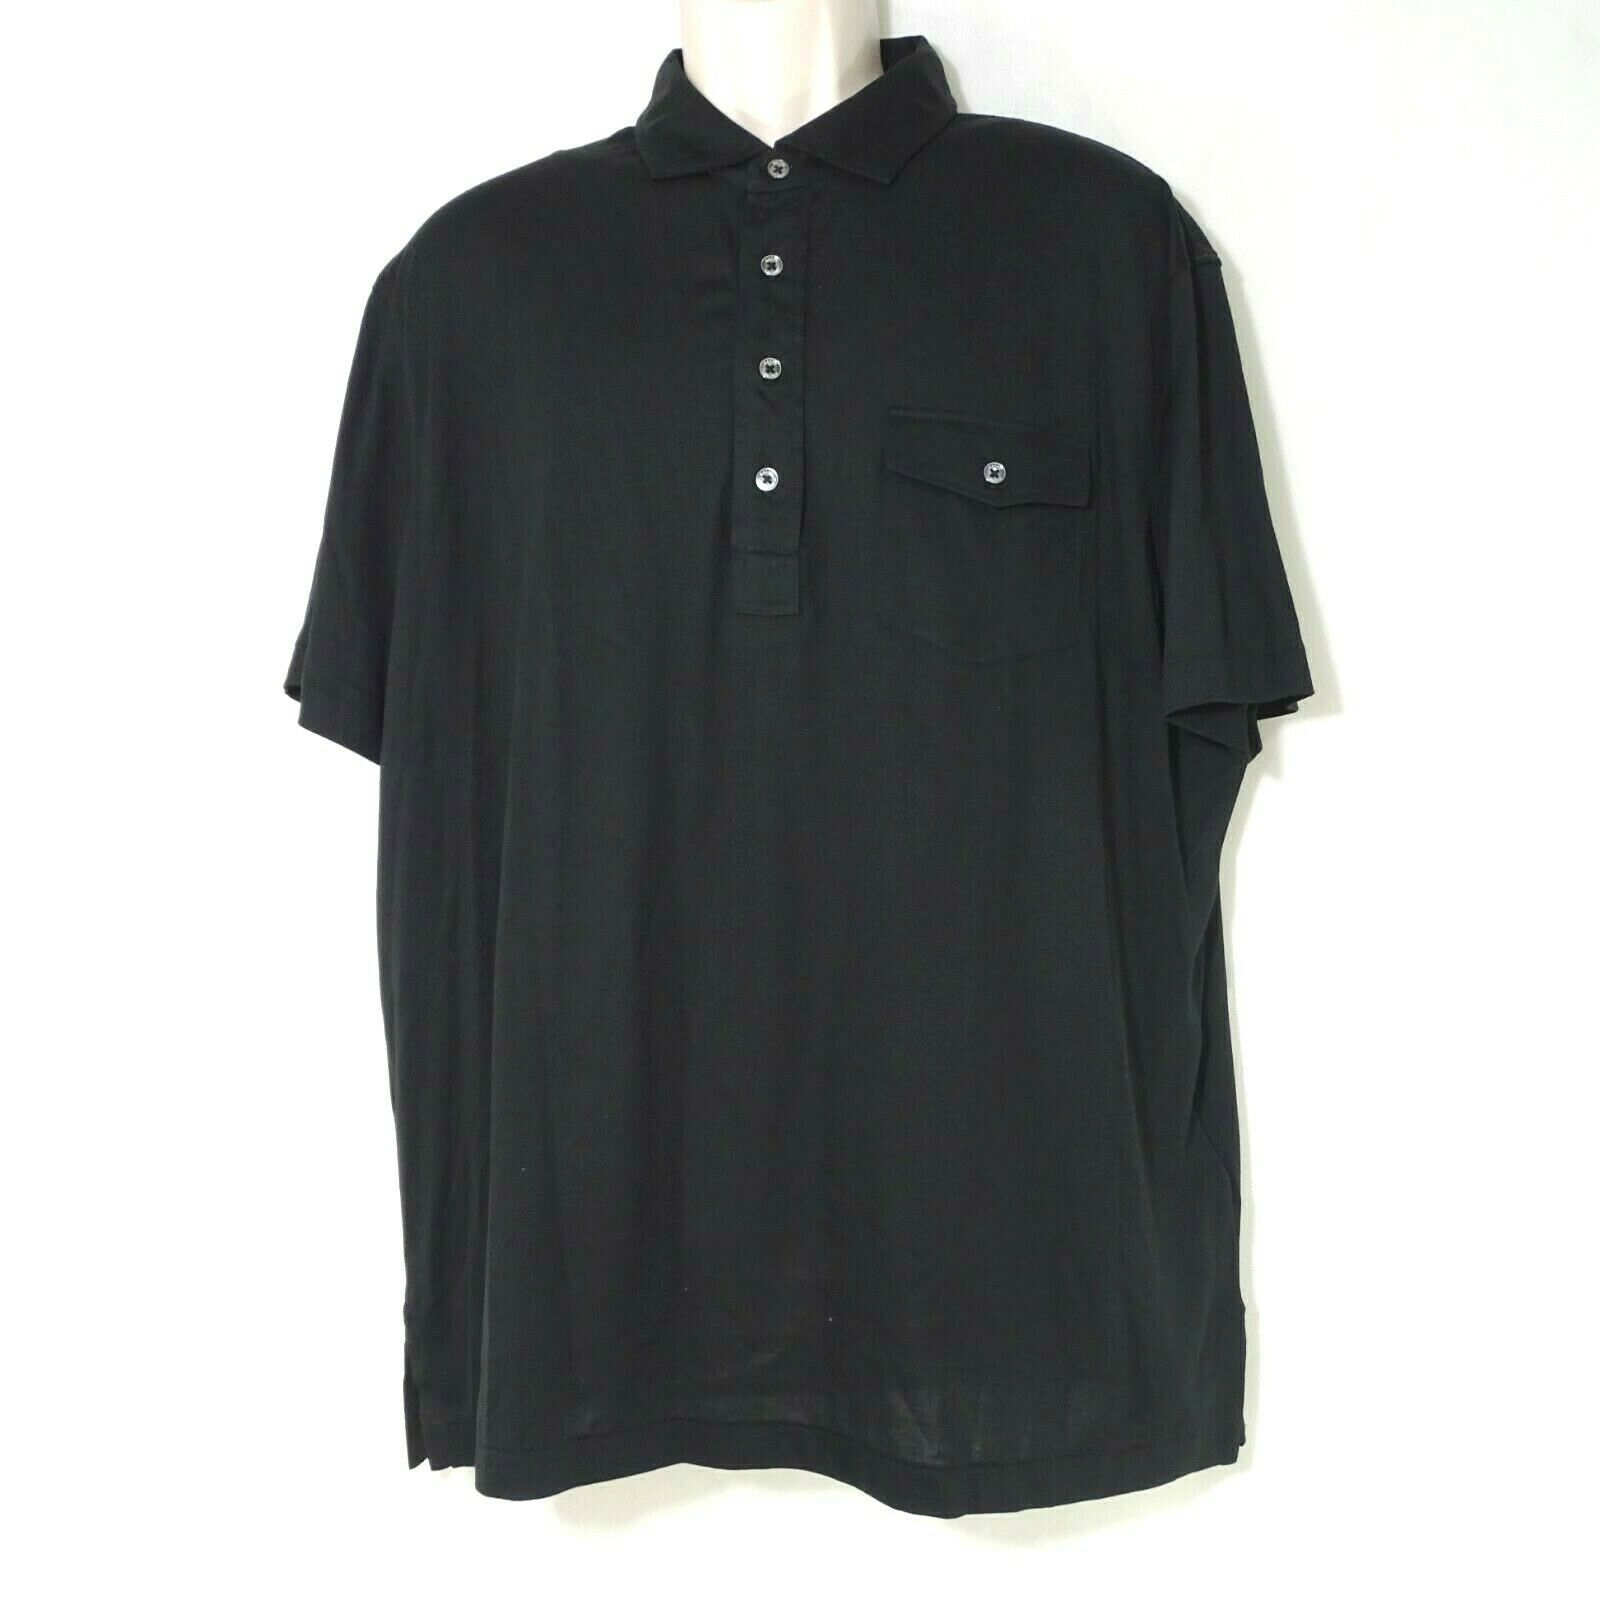 XL Men's Polo Ralph Lauren Boathouse Vintage Style Mesh Rugby Shirt NWT Size L